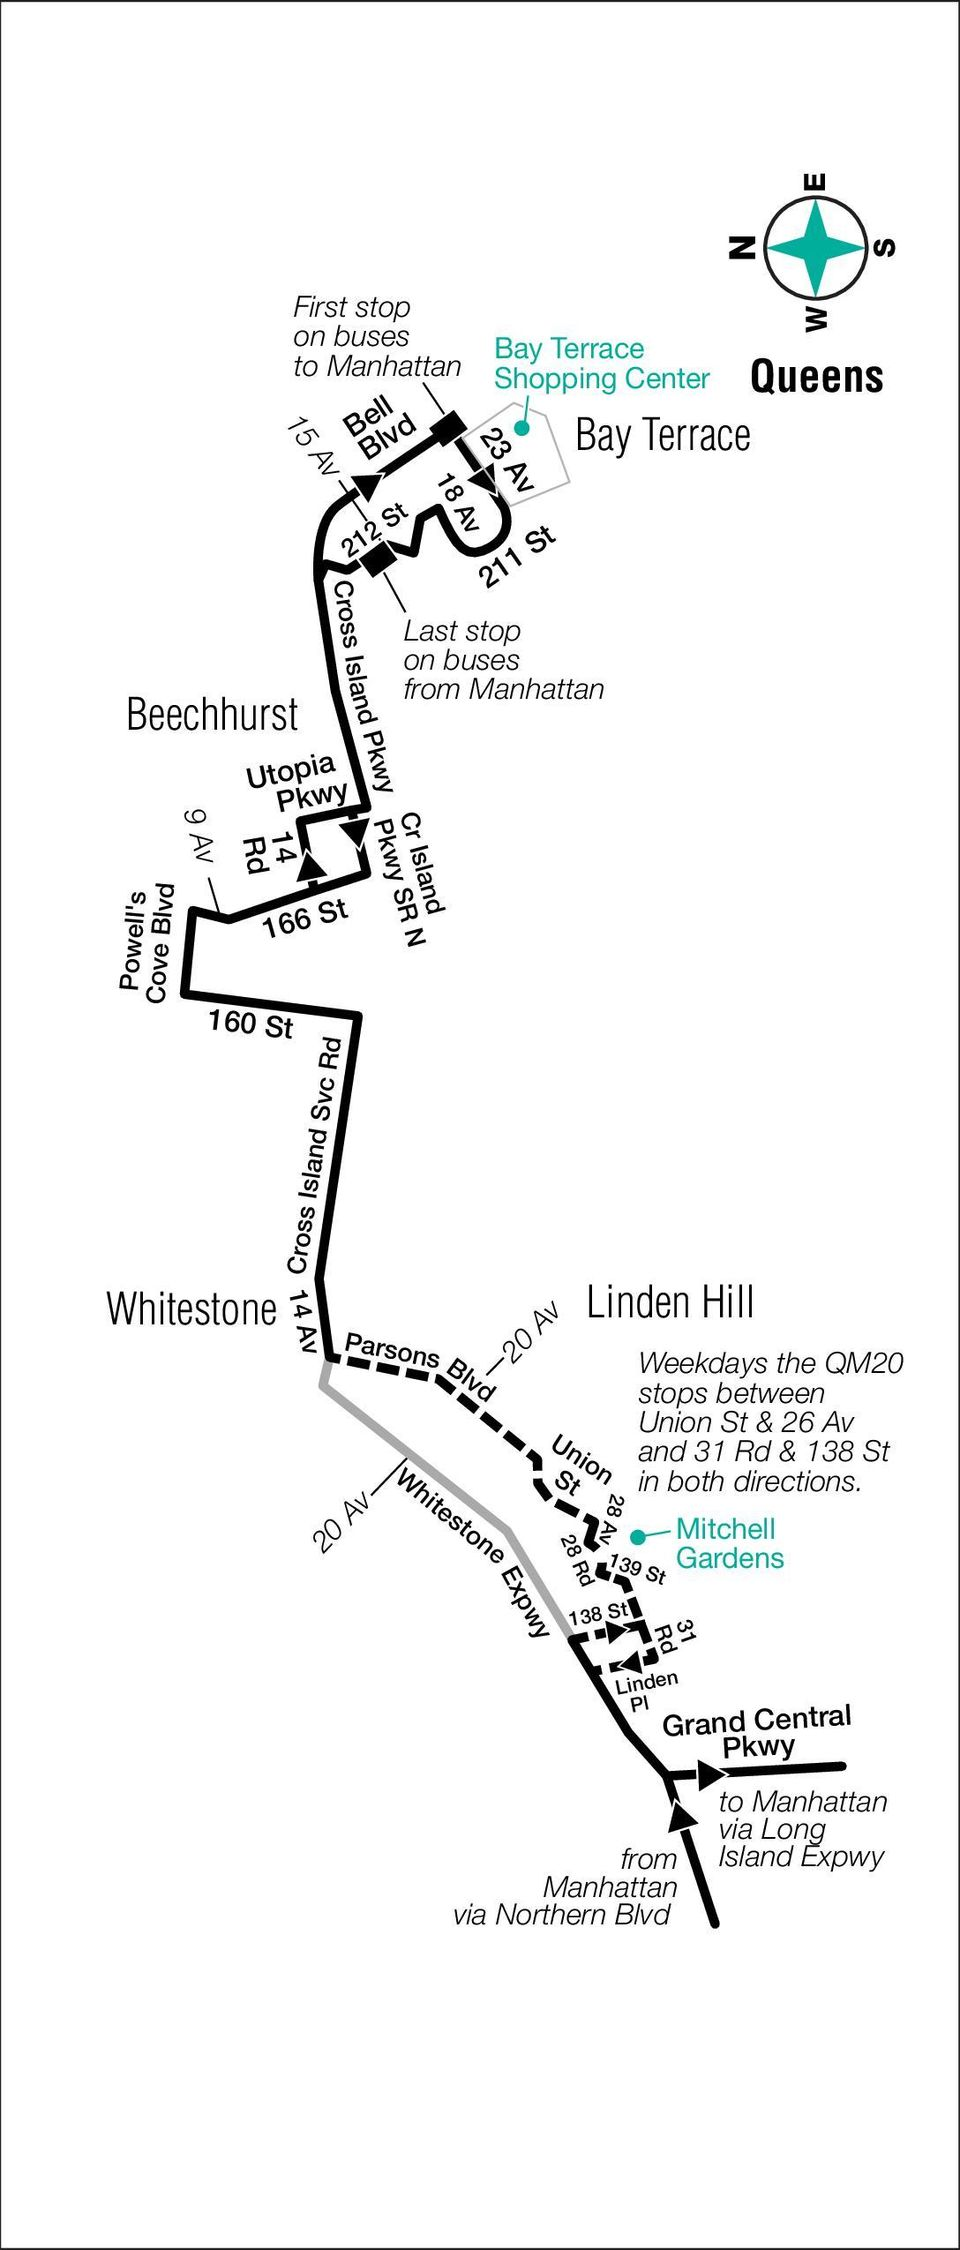 Svc Rd Parsons Blvd Union St 20 Av 20 Av 28 Rd Linden Hill 28 Av Weekdays the QM20 stops between Union St & 26 Av and 31 Rd & 138 St in both